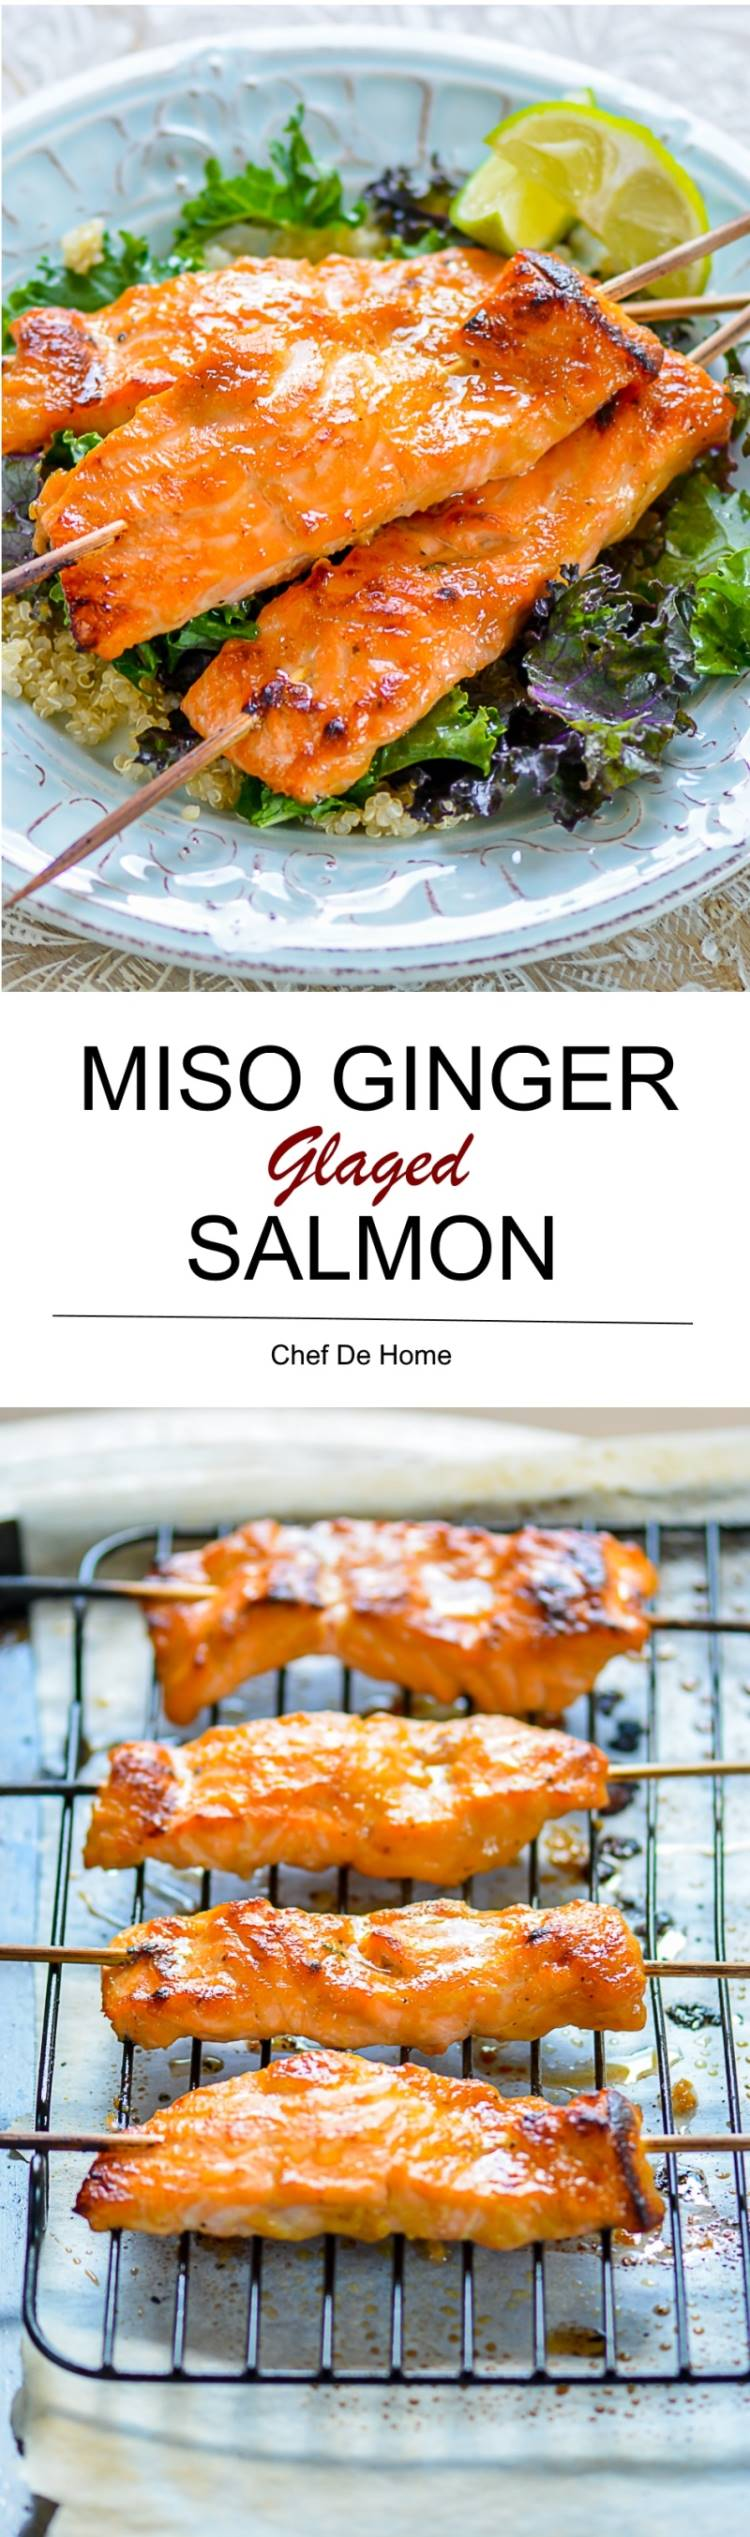 Miso-Ginger Glazed Salmon Recipe — Dishmaps